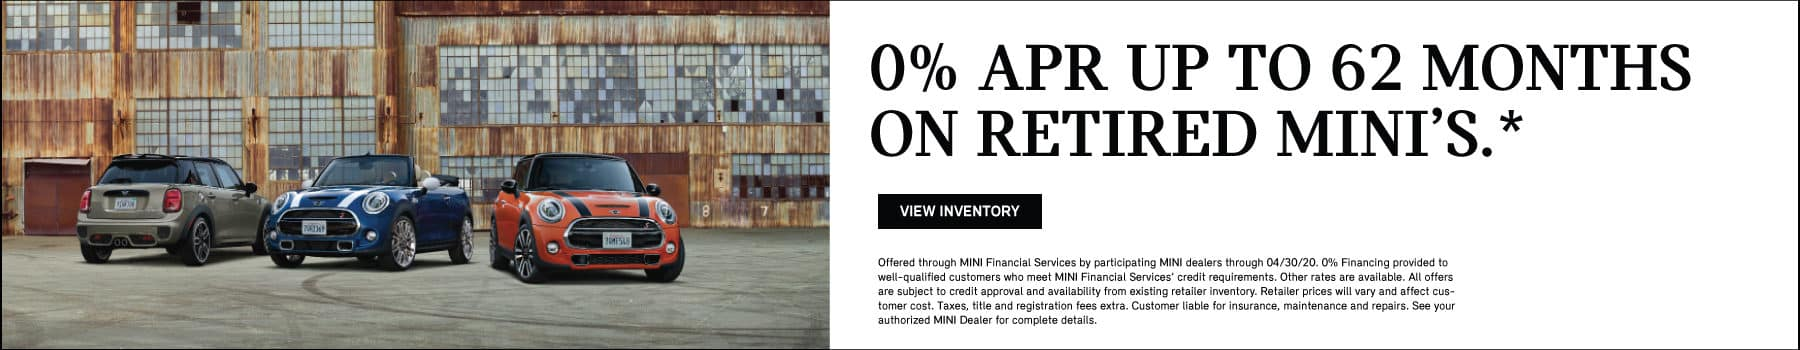 0% APR for 62 months on retired loaners. .